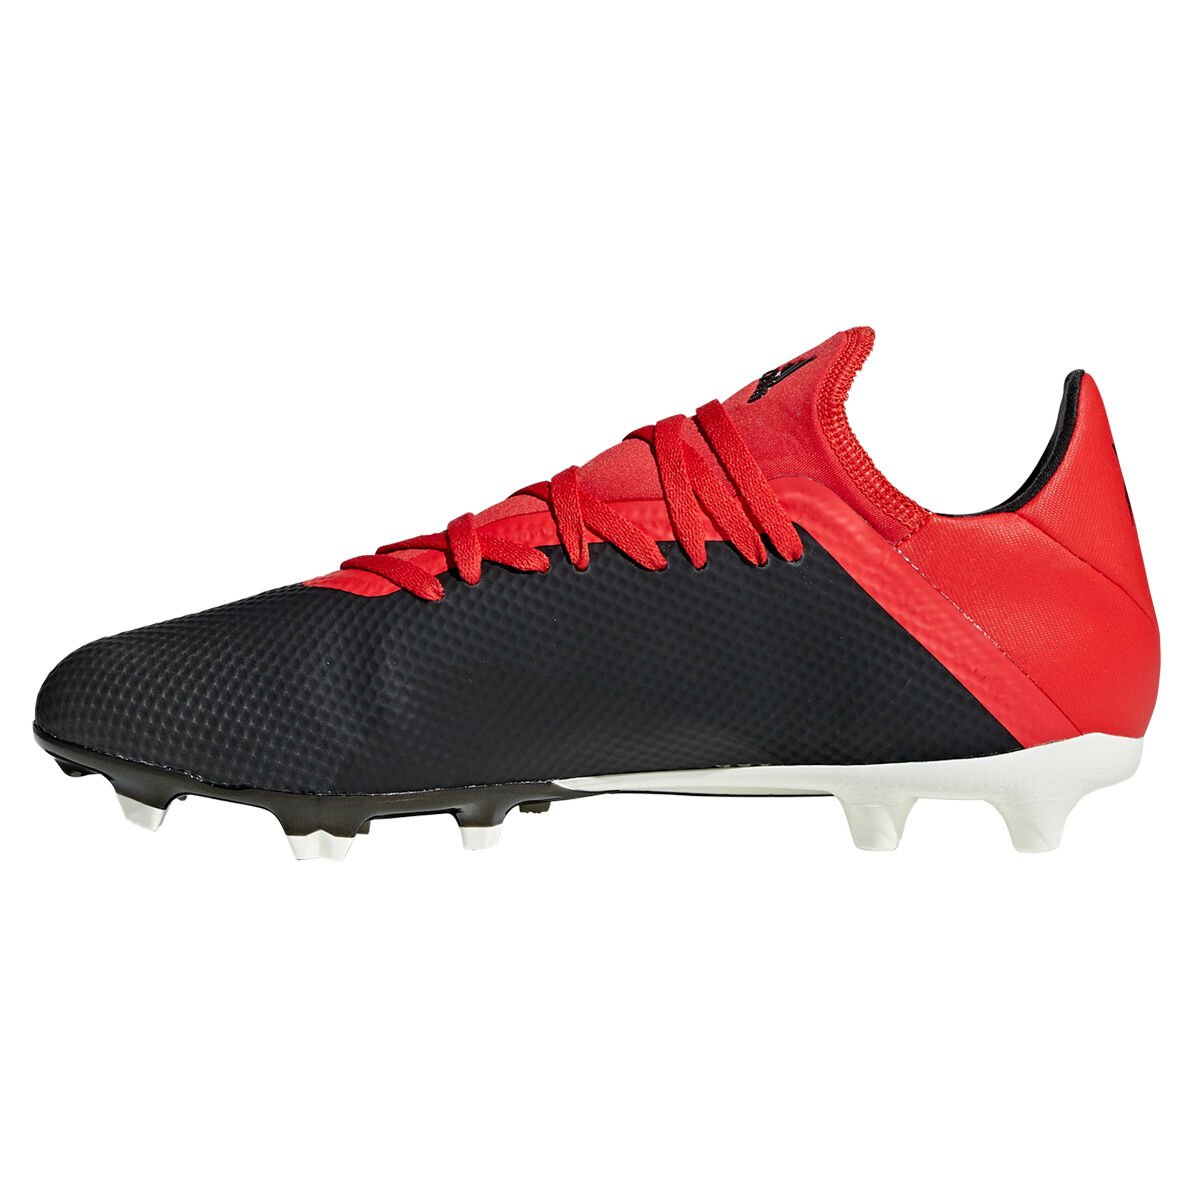 the best attitude f5ac2 f8674 ... where to buy adidas x 18.3 mens football boots black white us 7 black  white 4114c